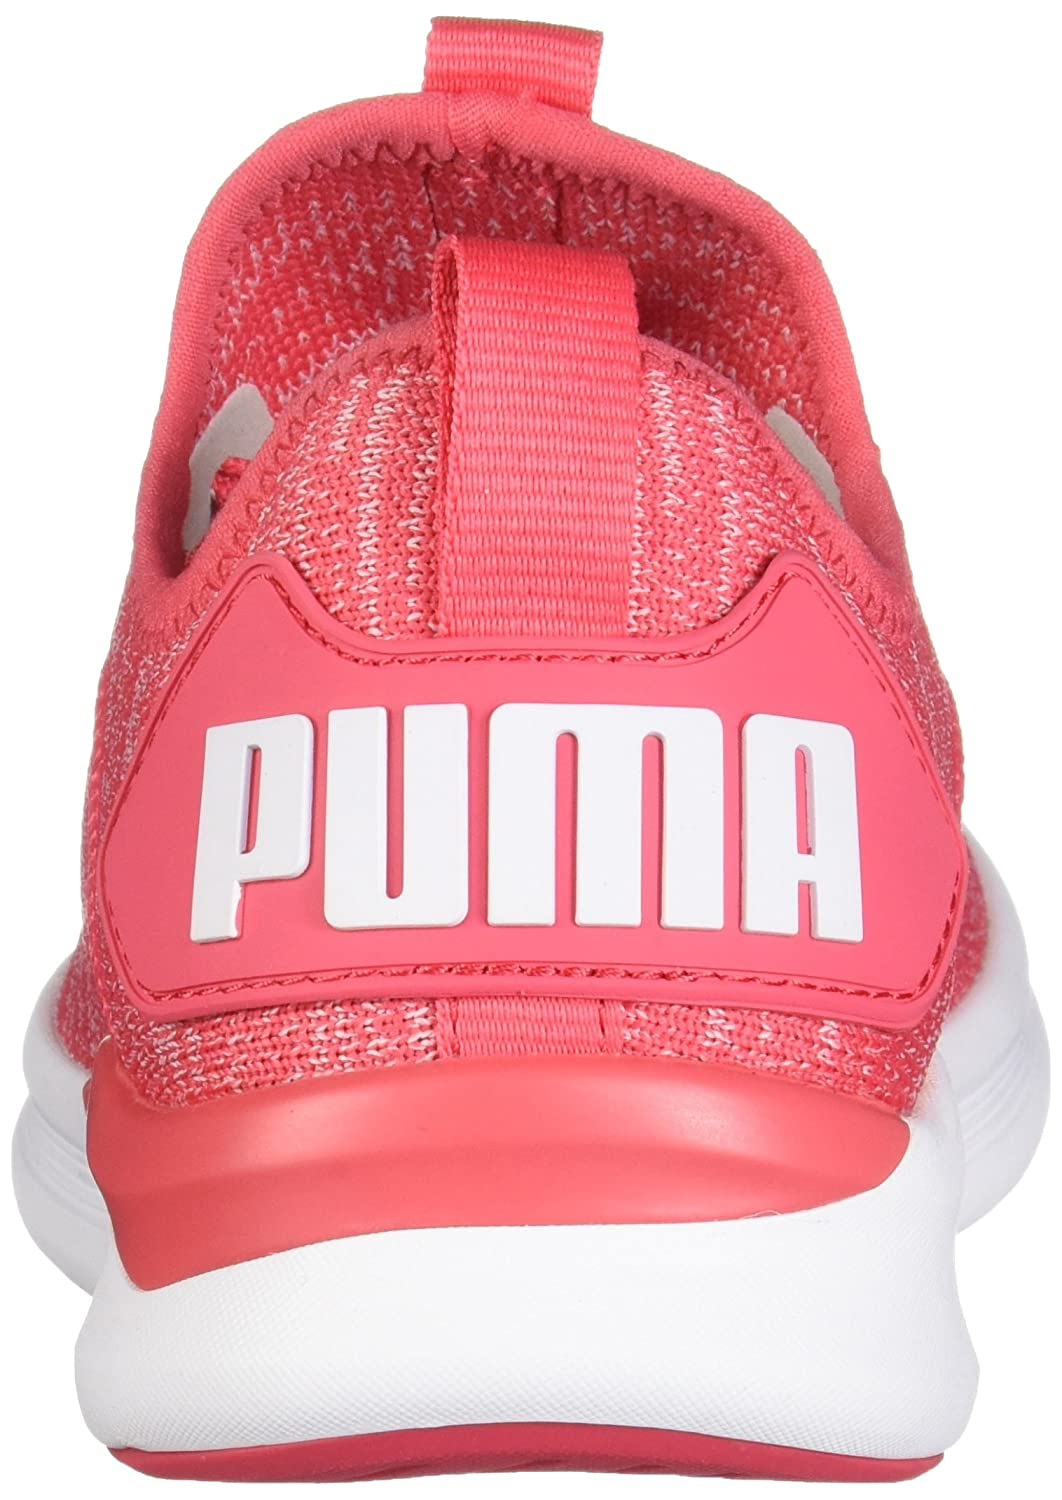 PUMA Kids Ignite Flash Evoknit Jr Sneaker